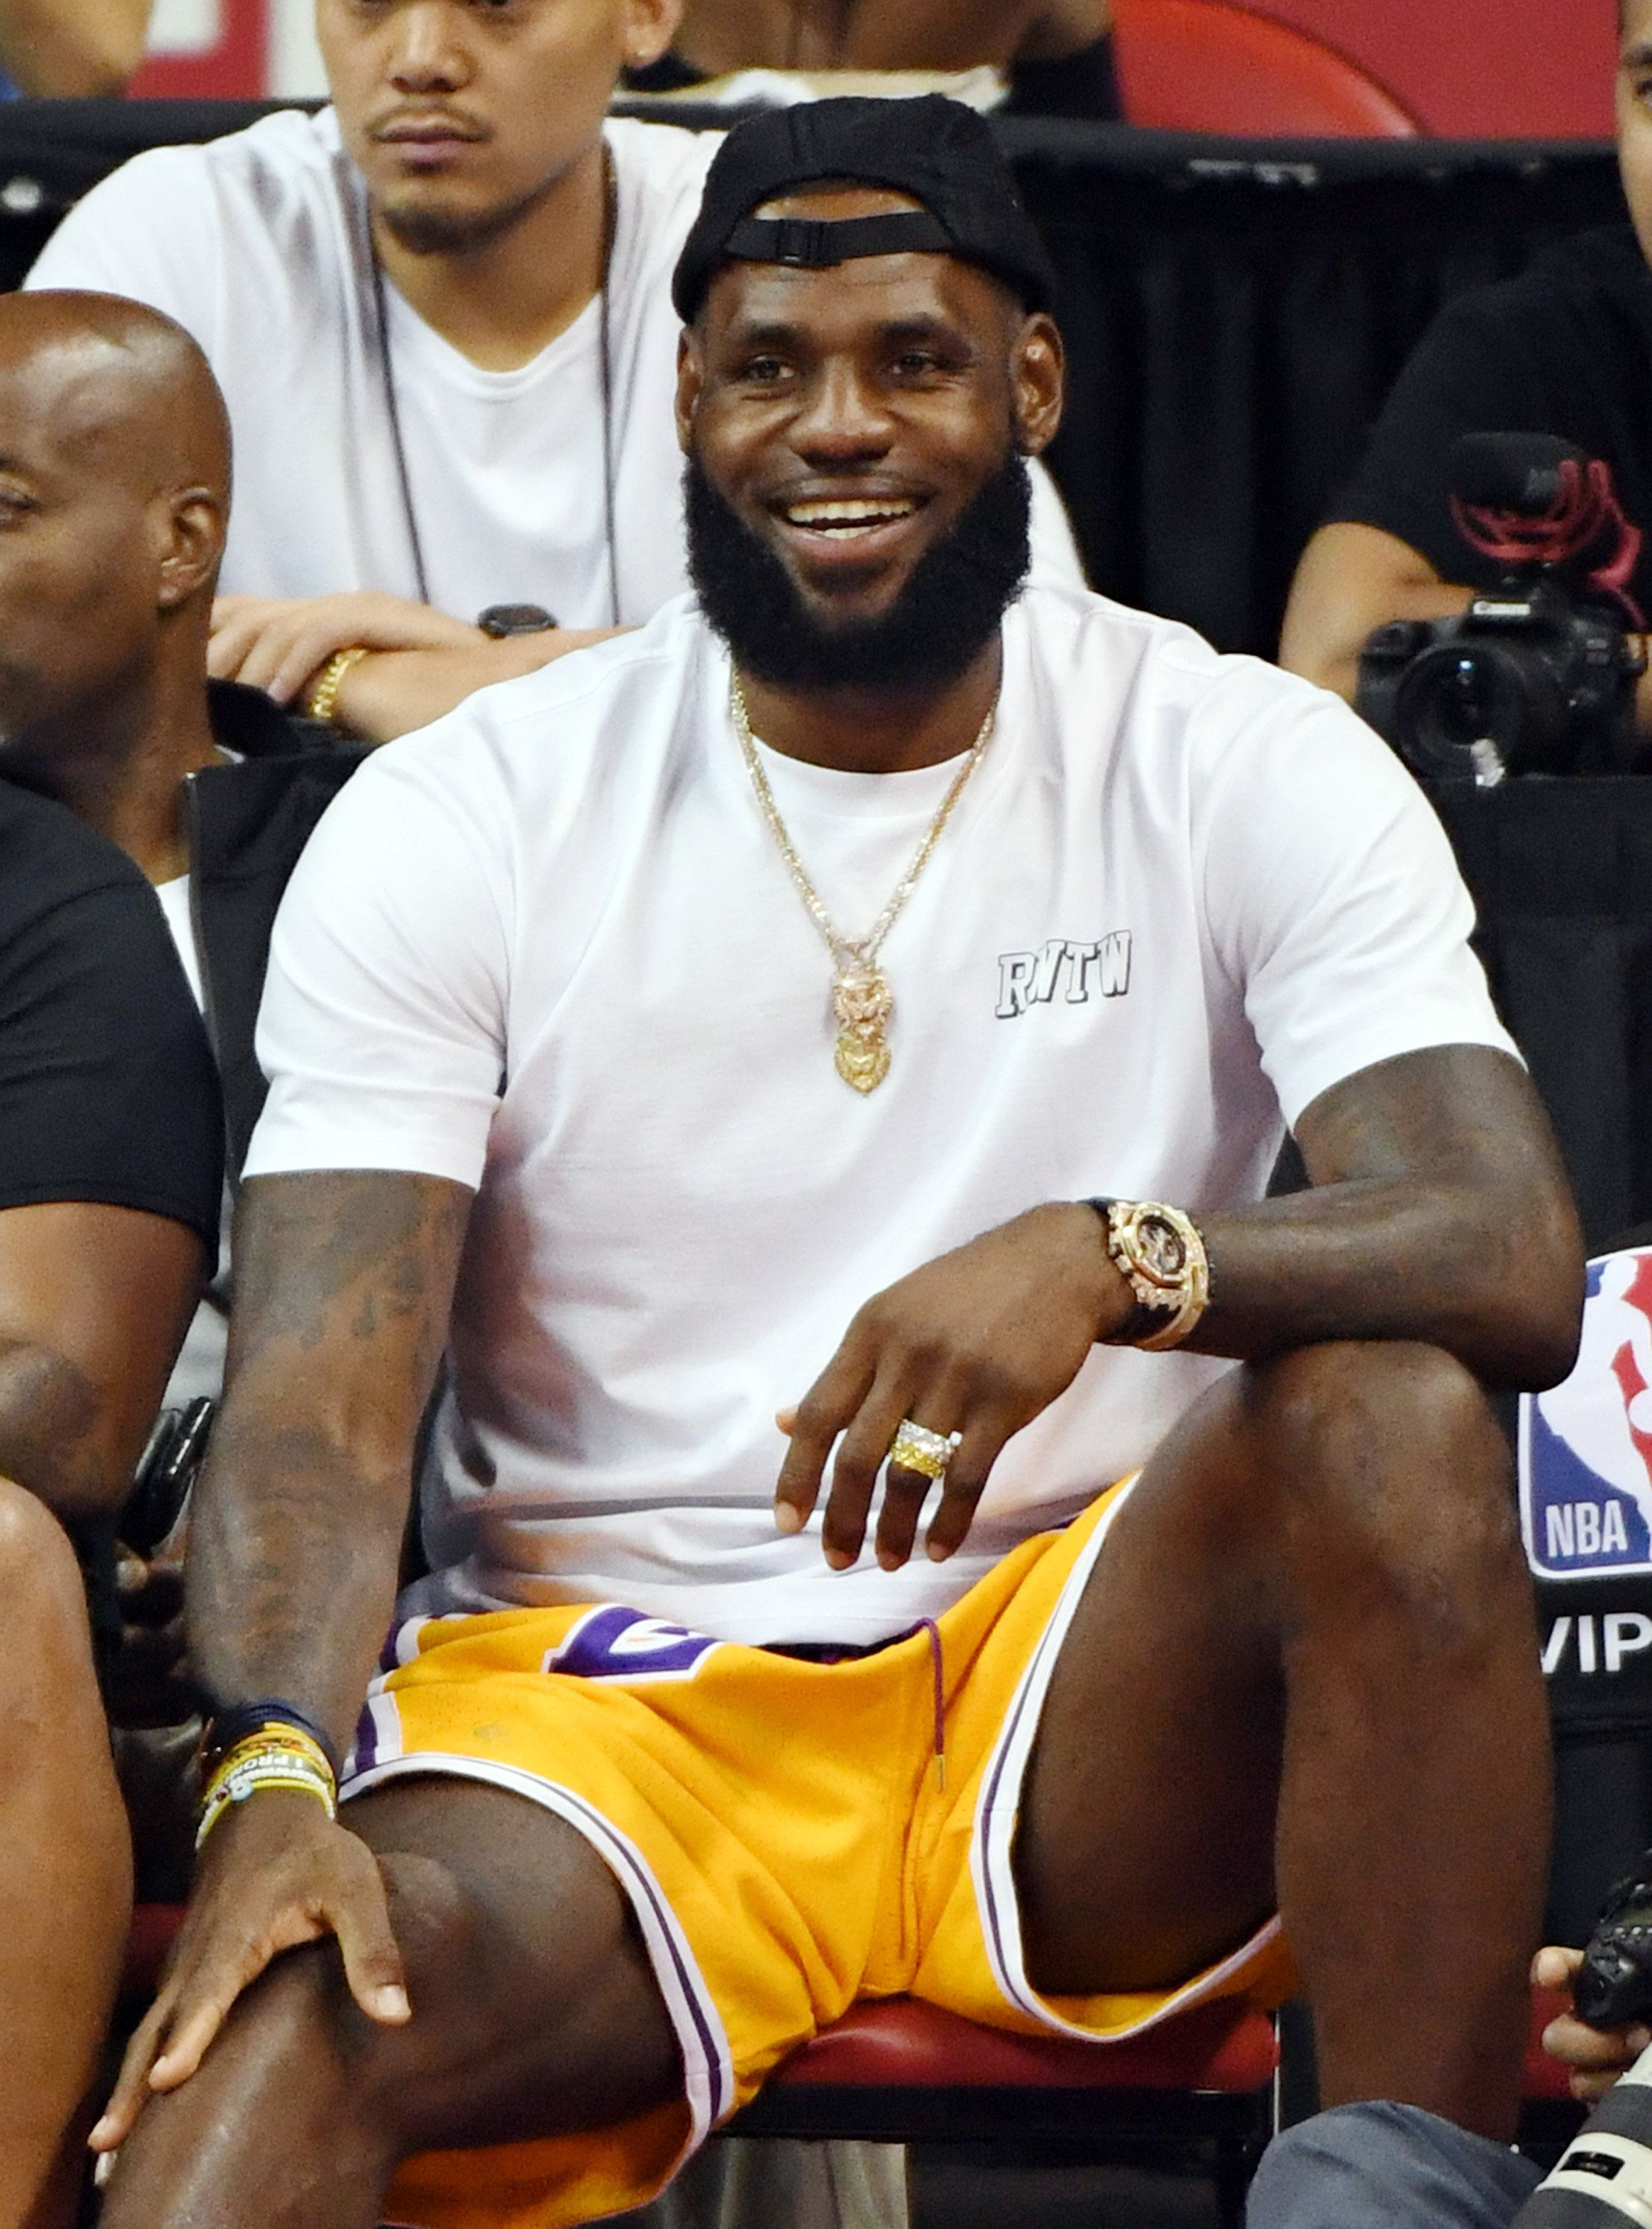 LAS VEGAS, NV - JULY 15:  LeBron James of the Los Angeles Lakers attends a quarterfinal game of the 2018 NBA Summer League between the Lakers and the Detroit Pistons at the Thomas & Mack Center on July 15, 2018 in Las Vegas, Nevada. NOTE TO USER: User expressly acknowledges and agrees that, by downloading and or using this photograph, User is consenting to the terms and conditions of the Getty Images License Agreement.  (Photo by Ethan Miller/Getty Images)